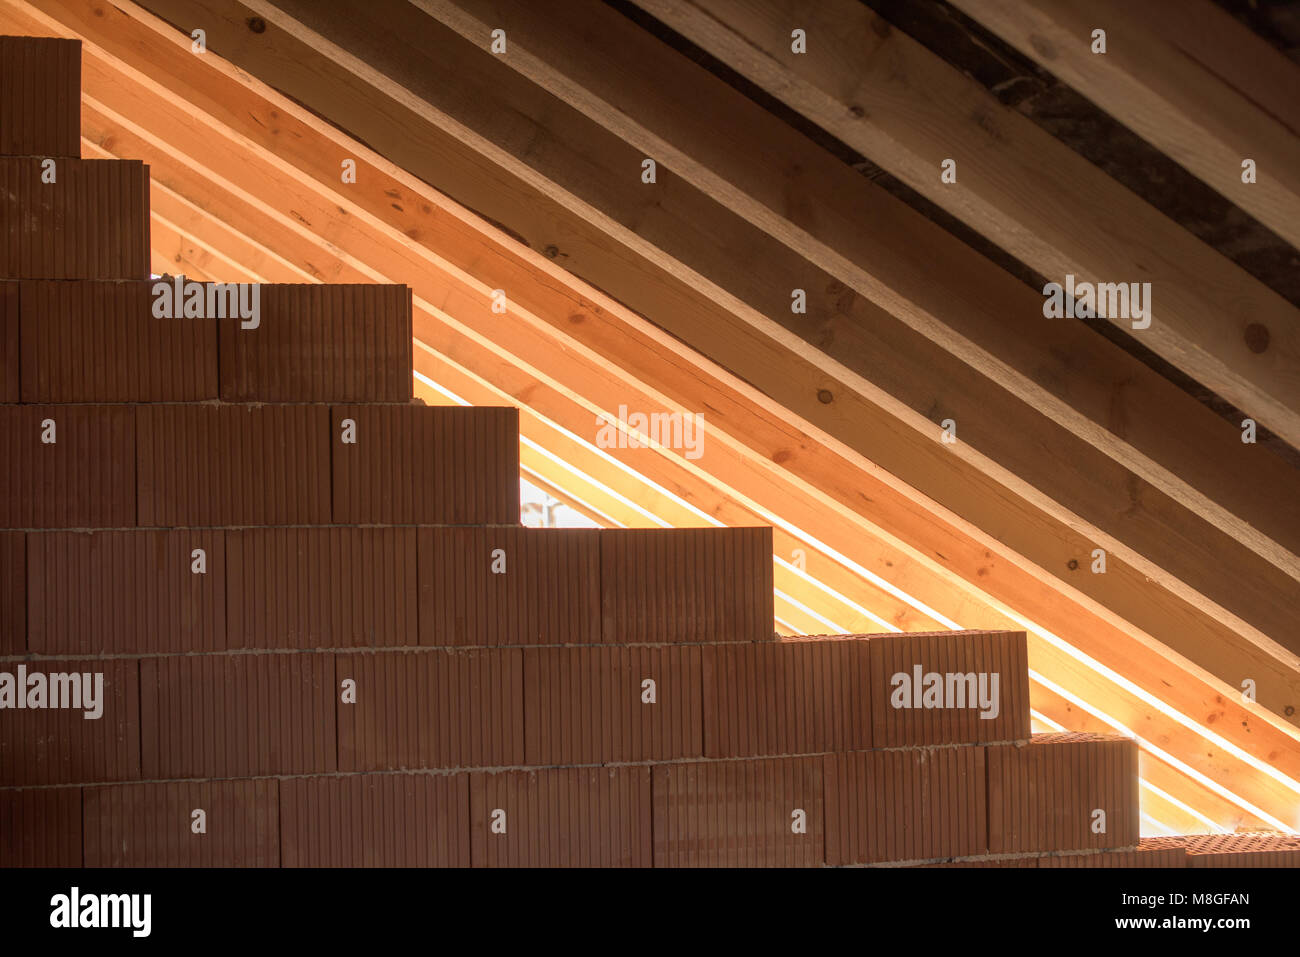 Roof Beam Support Stockfotos & Roof Beam Support Bilder - Alamy